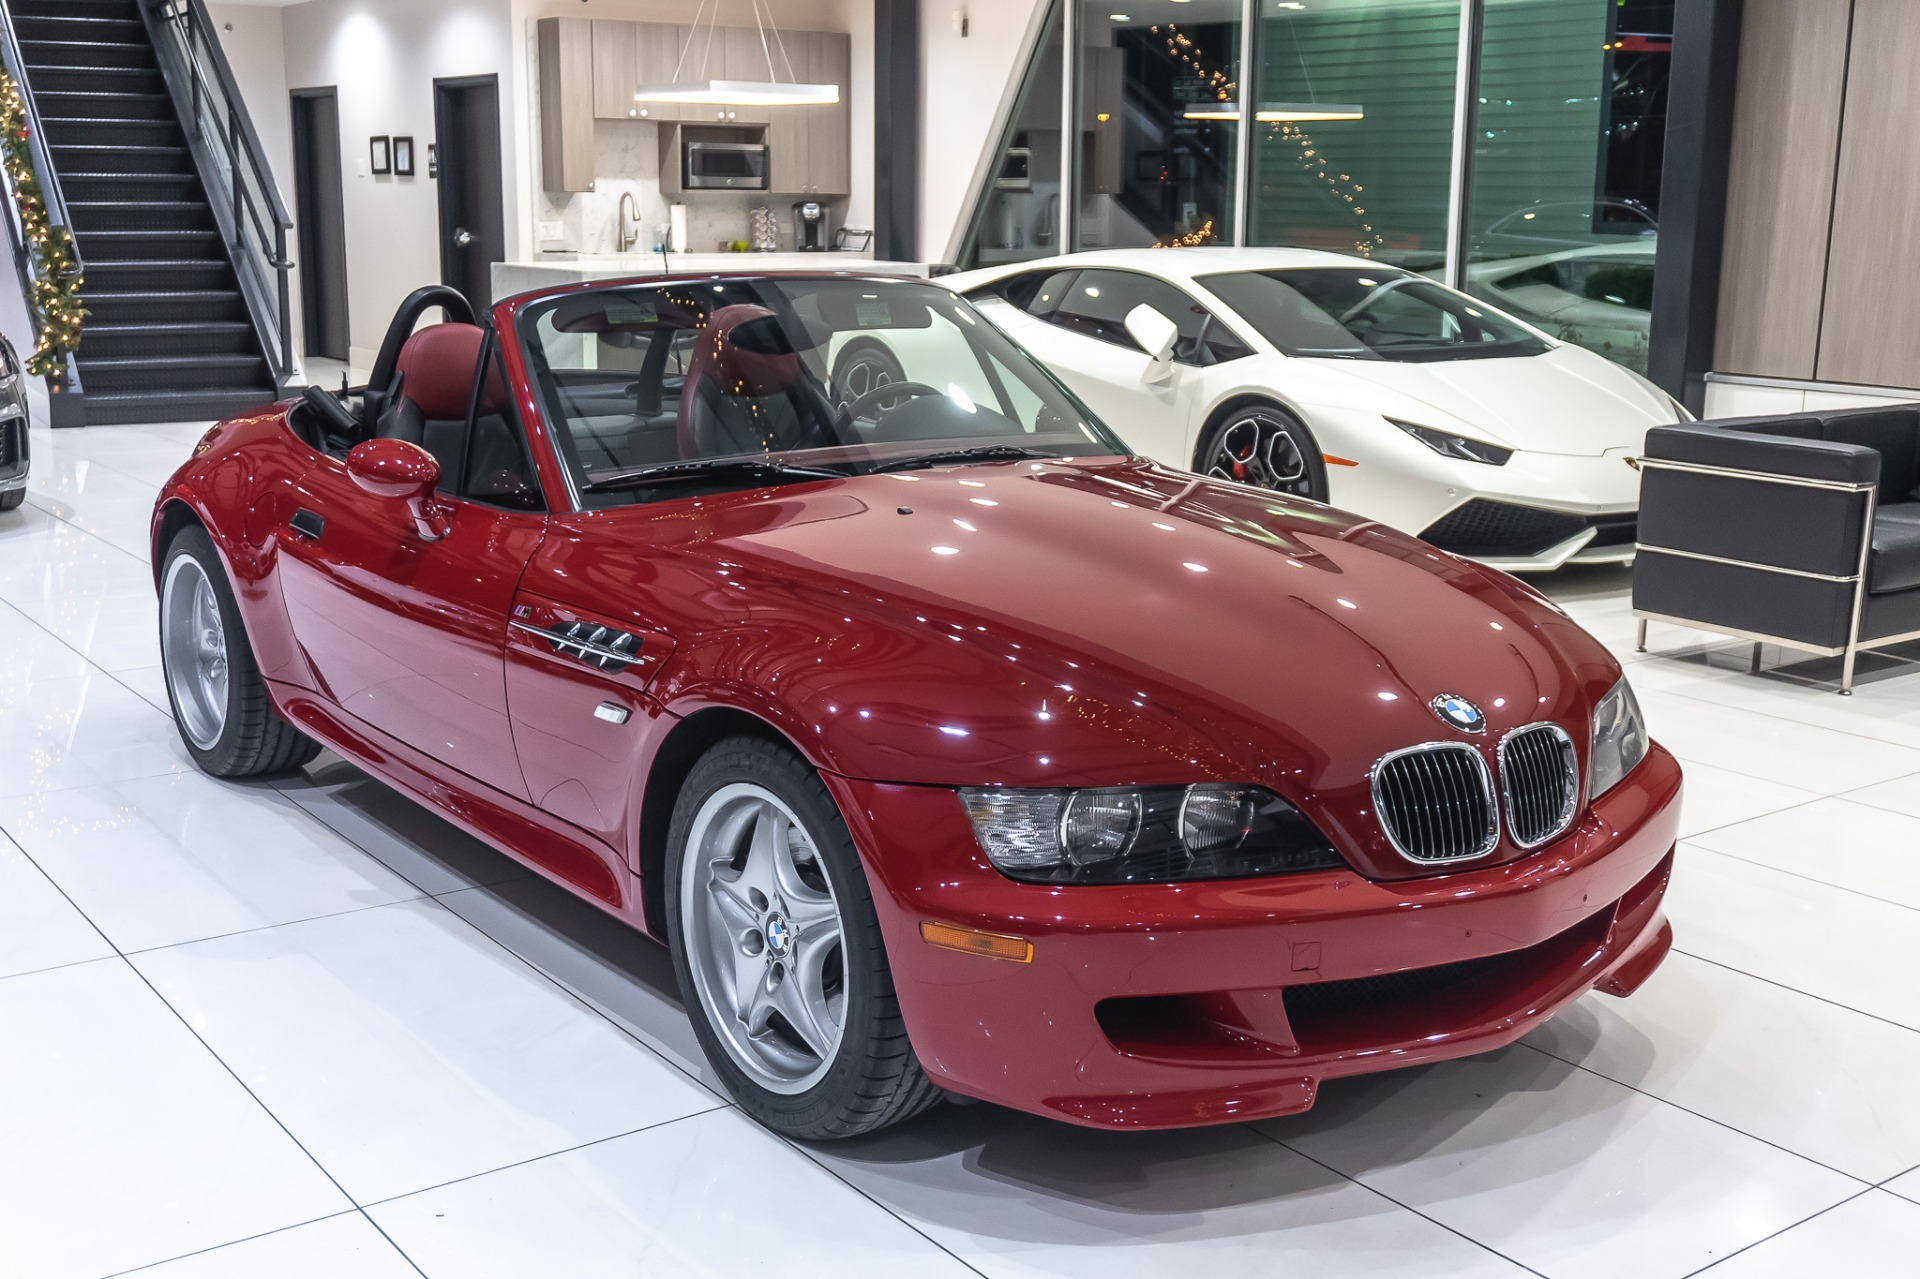 Used 2002 Bmw Z3 M Roadster 5 Speed S54 Collector Quality For Sale Special Pricing Chicago Motor Cars Stock 16625b